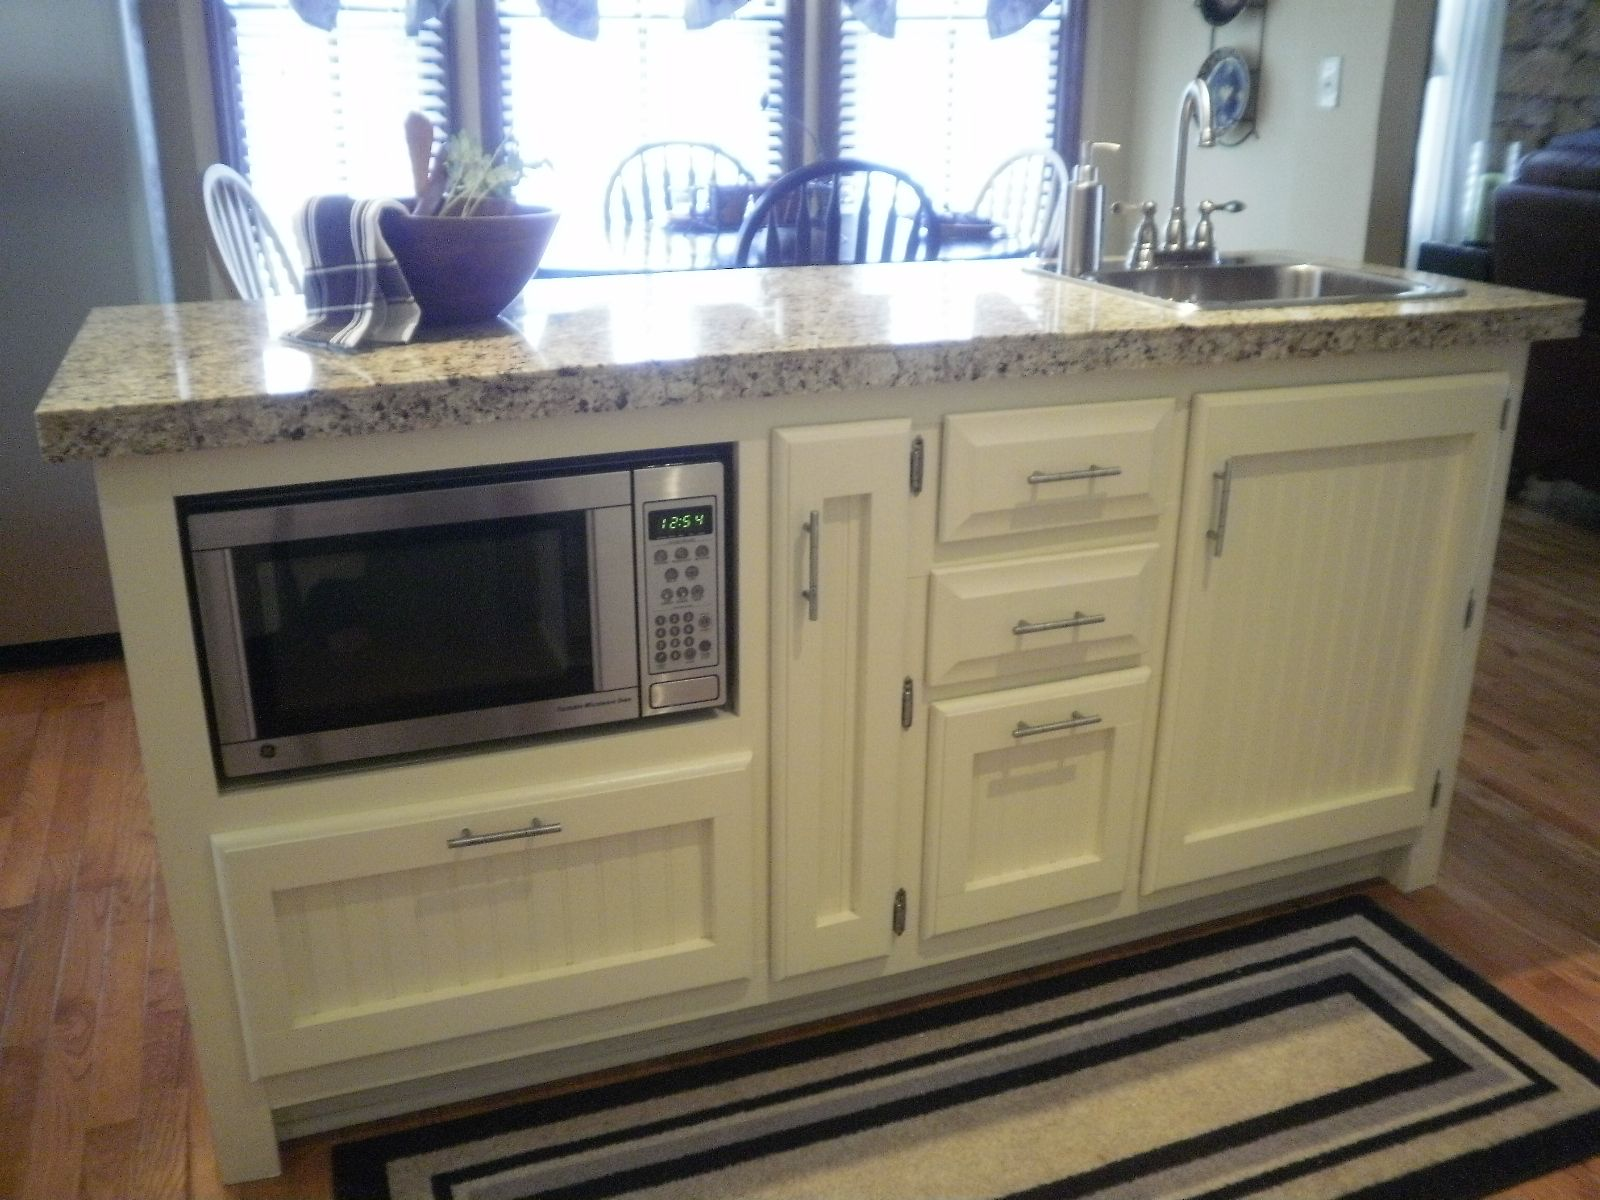 Photos Of Kitchen Islands Pin By Becky Truax On Home In 2019 | Kitchen, Microwave In